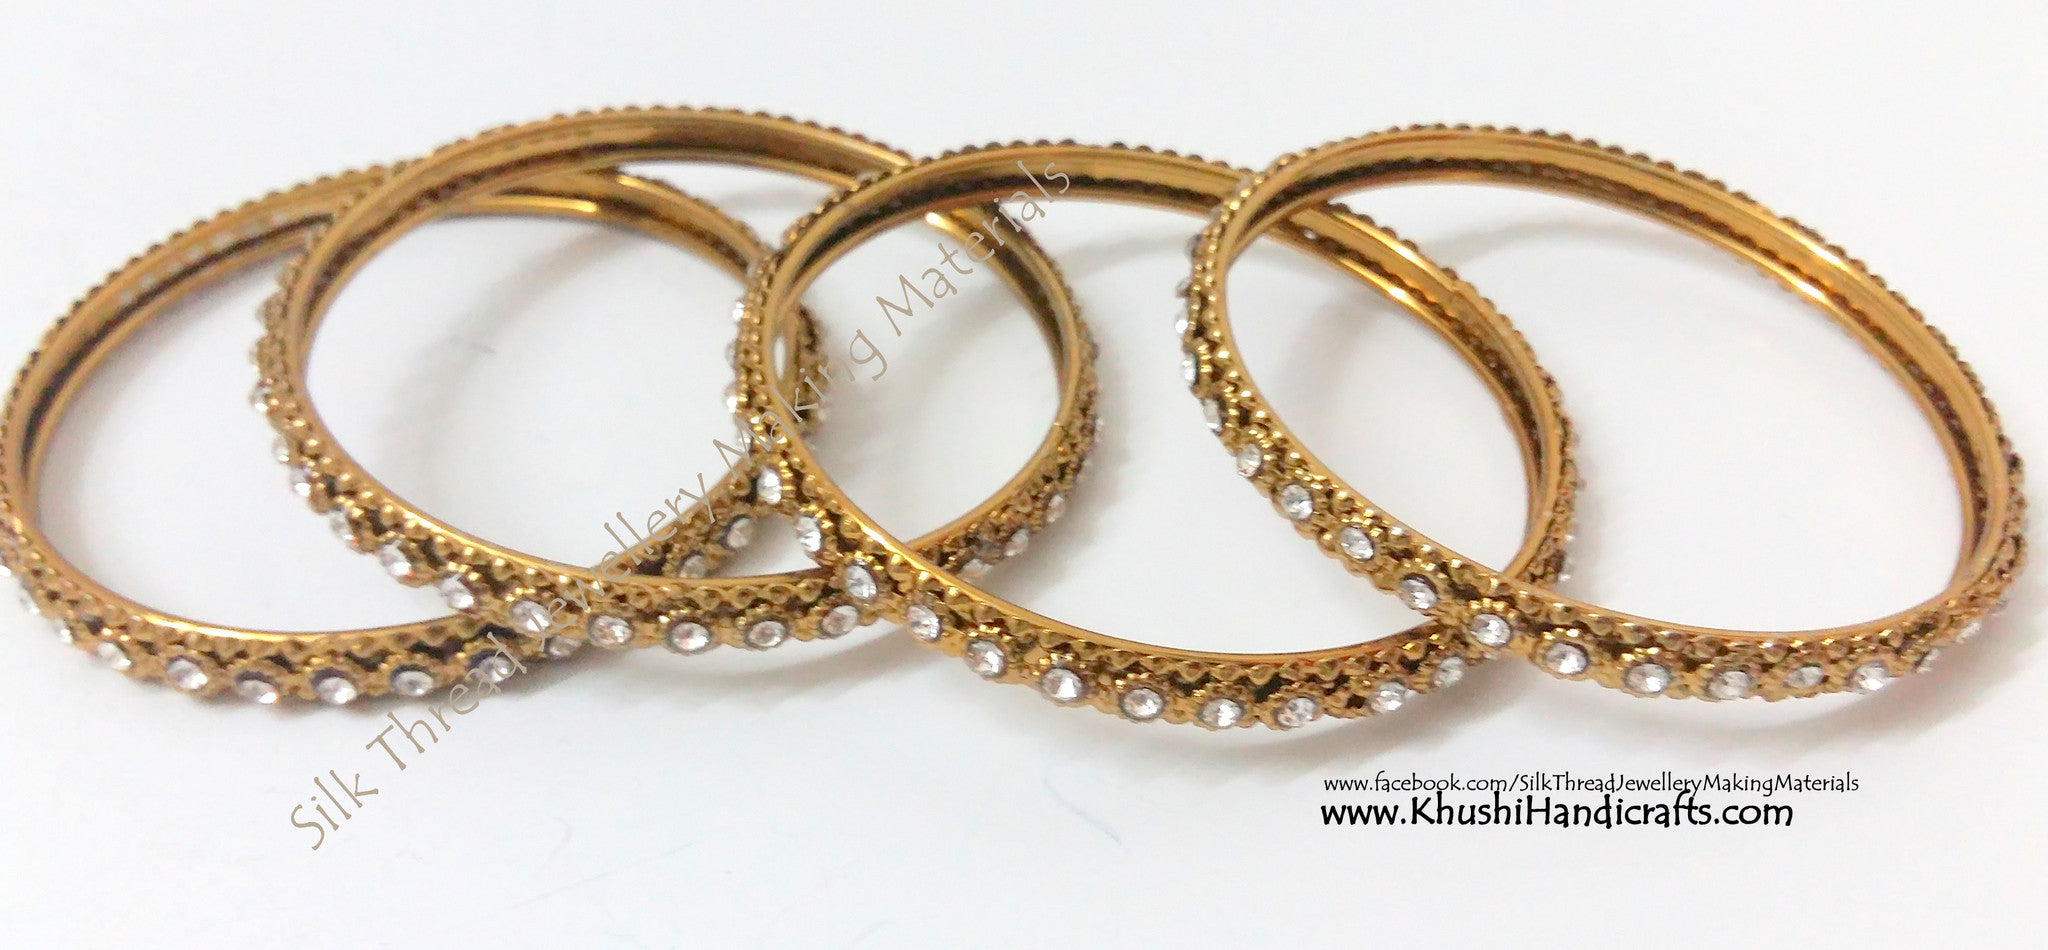 wear plated india bangles voonik online collections shopping designer gold regular original metal